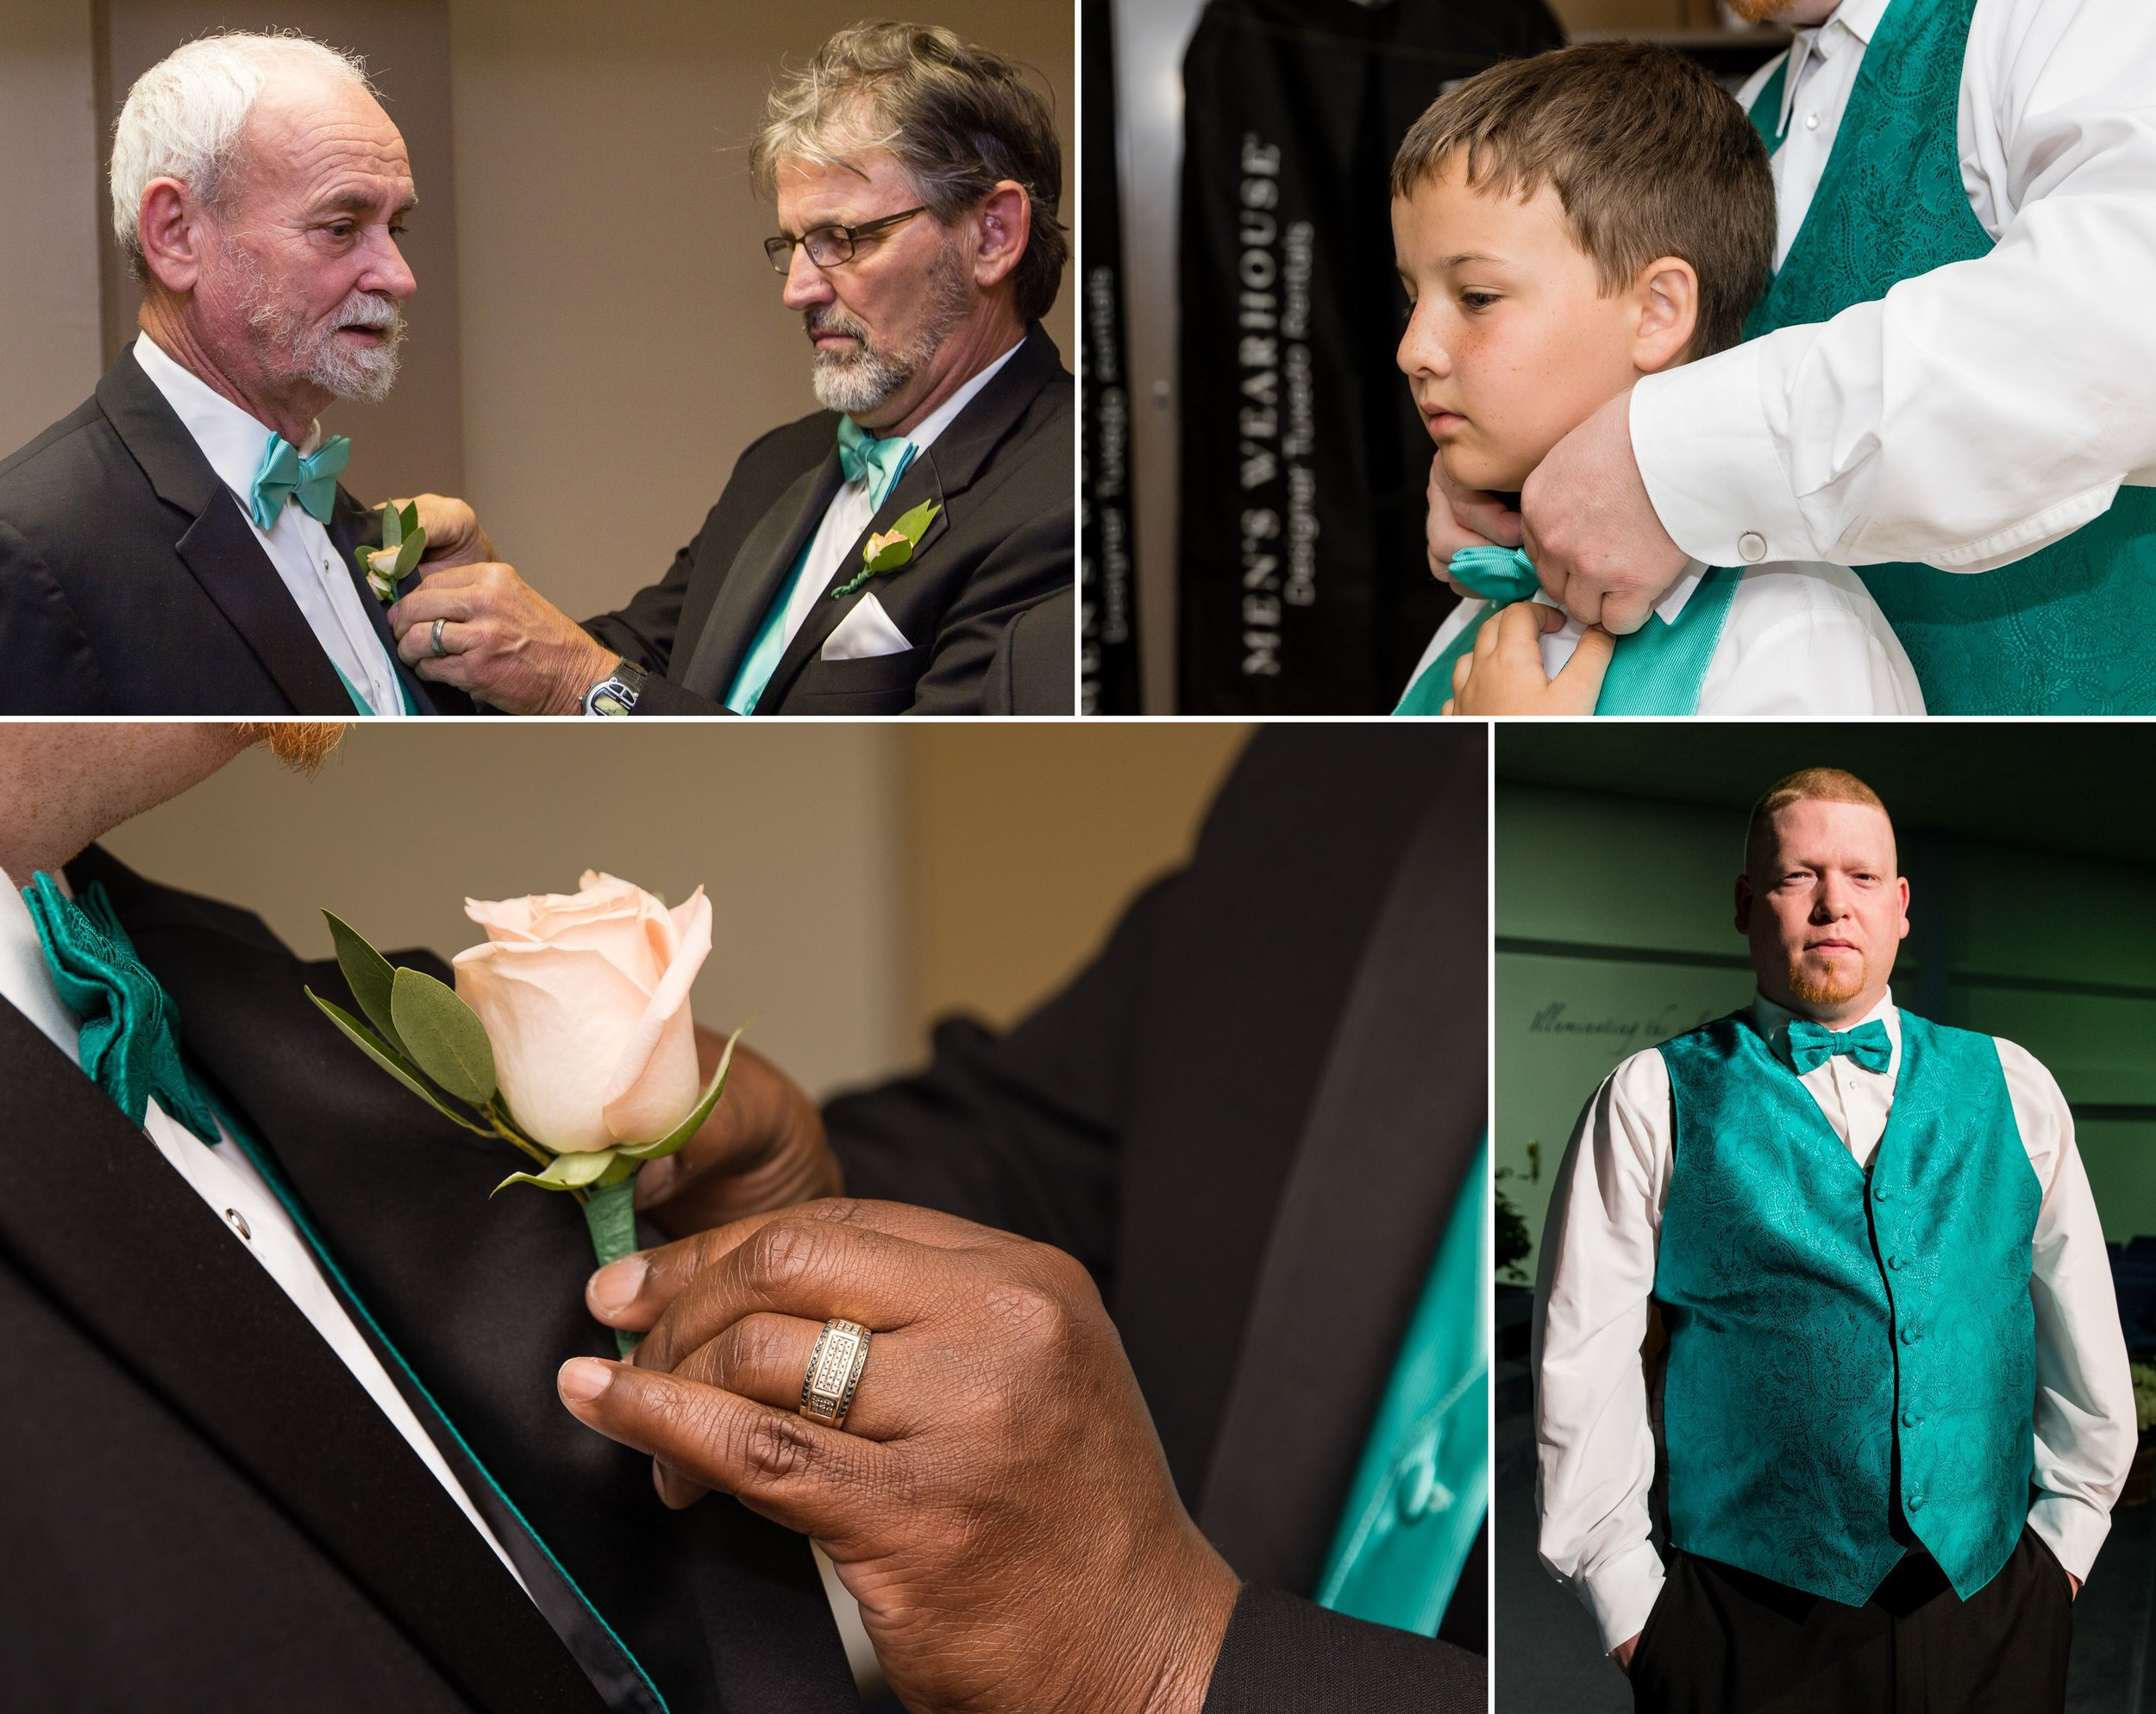 lighthouse-christian-ministries-wedding-ceremony-schiller-park-portraits-columbus-ohio-muschlitz-photography-003.JPG